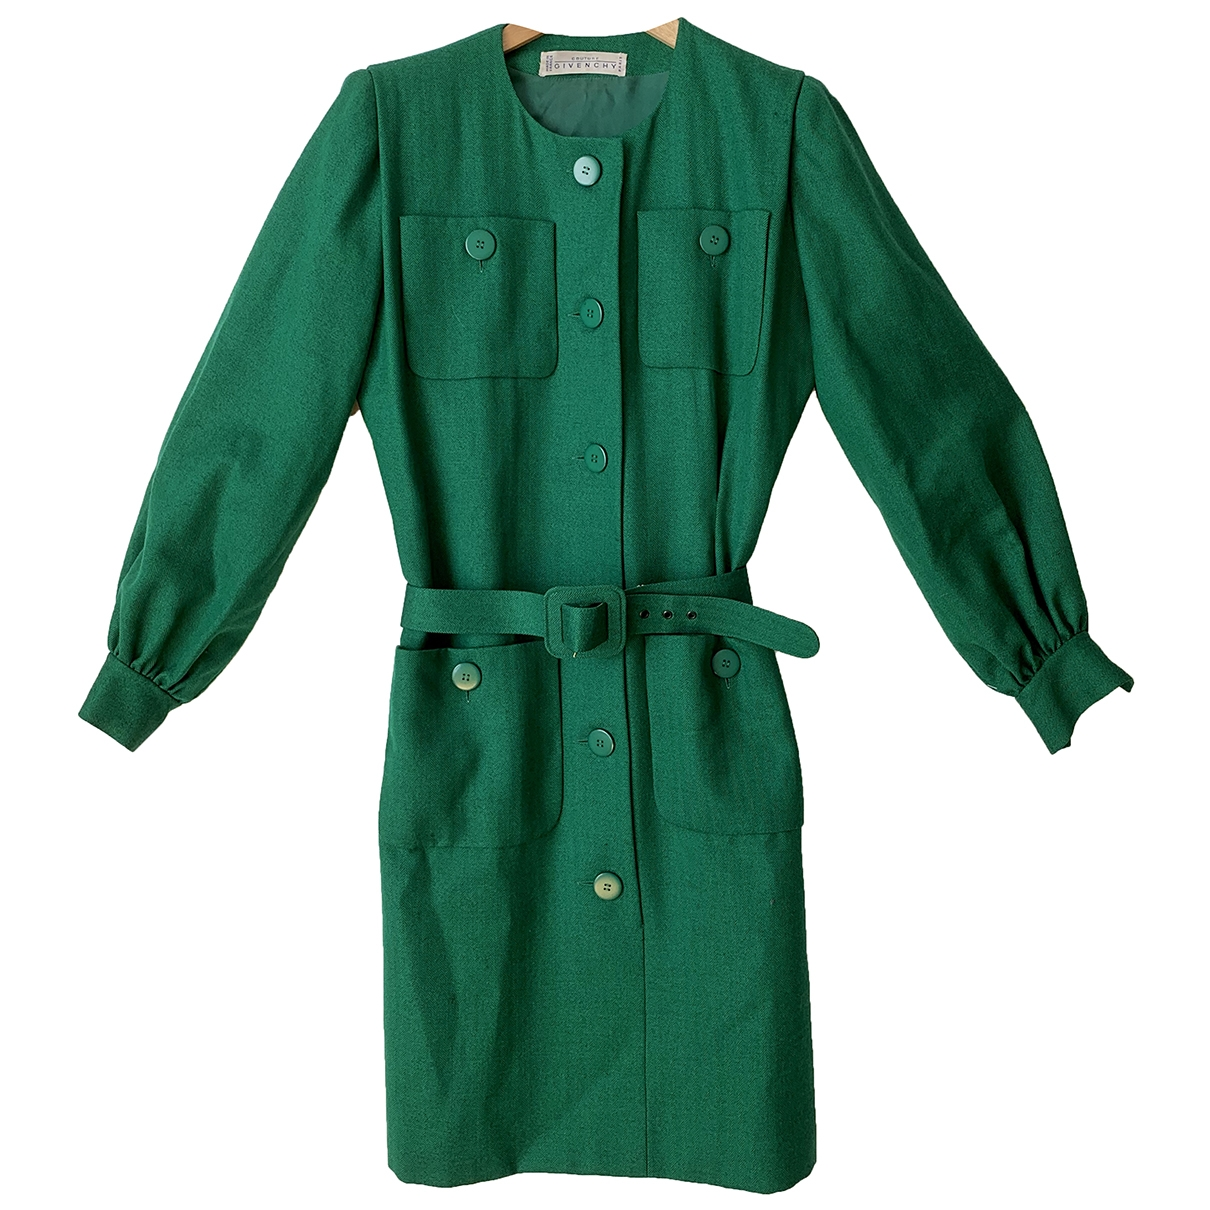 Givenchy \N Green Wool dress for Women 42 FR